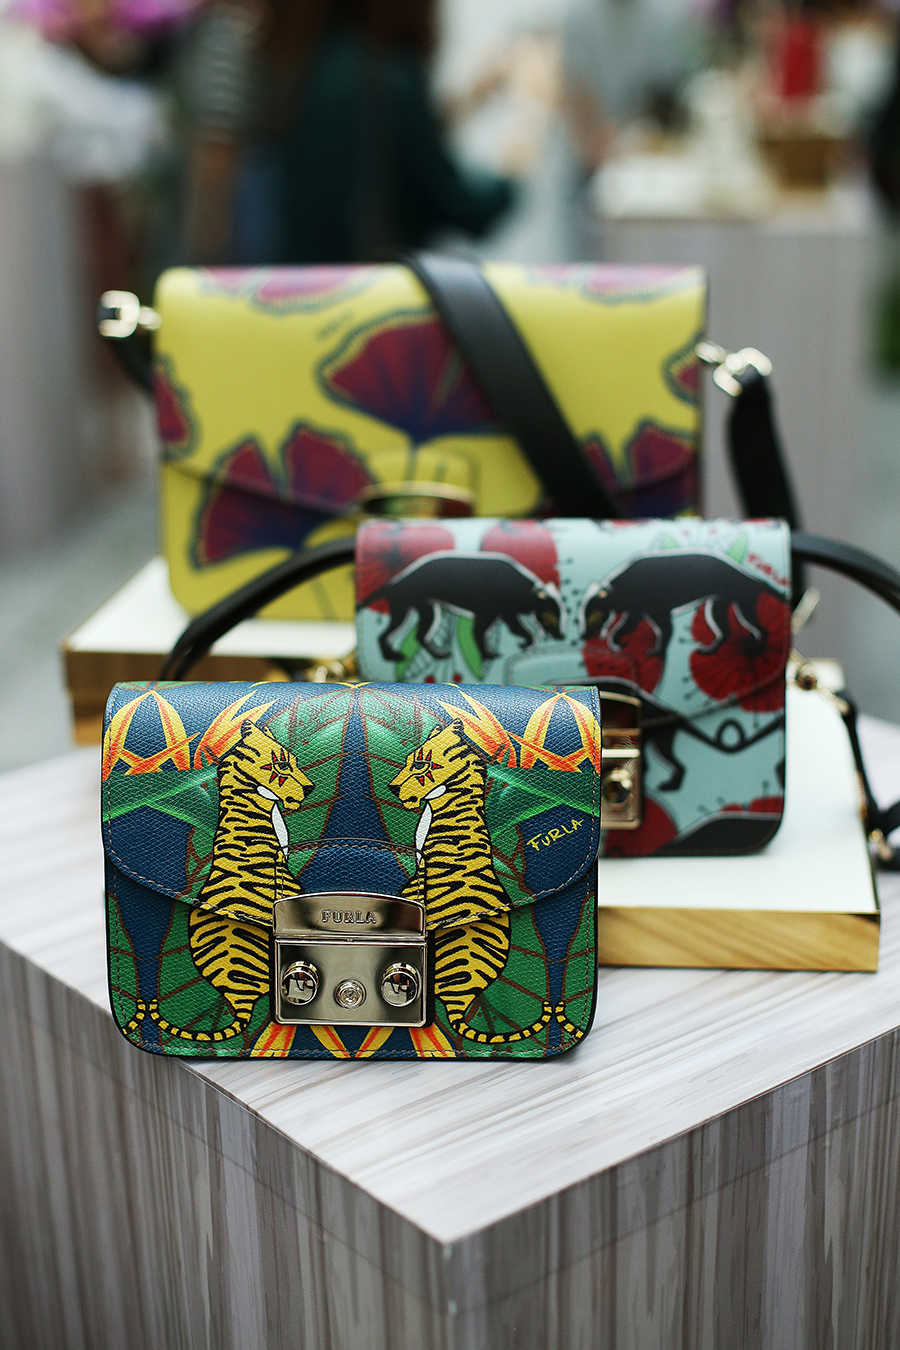 The preview of Furla Spring/Summer 2017 Collection: Urban Jungle in Malaysia was held at the orchid conservatory of The Majestic Kuala Lumpur, where tropical prints and exotic shapes ran rampant in a #FieldOfImagination.